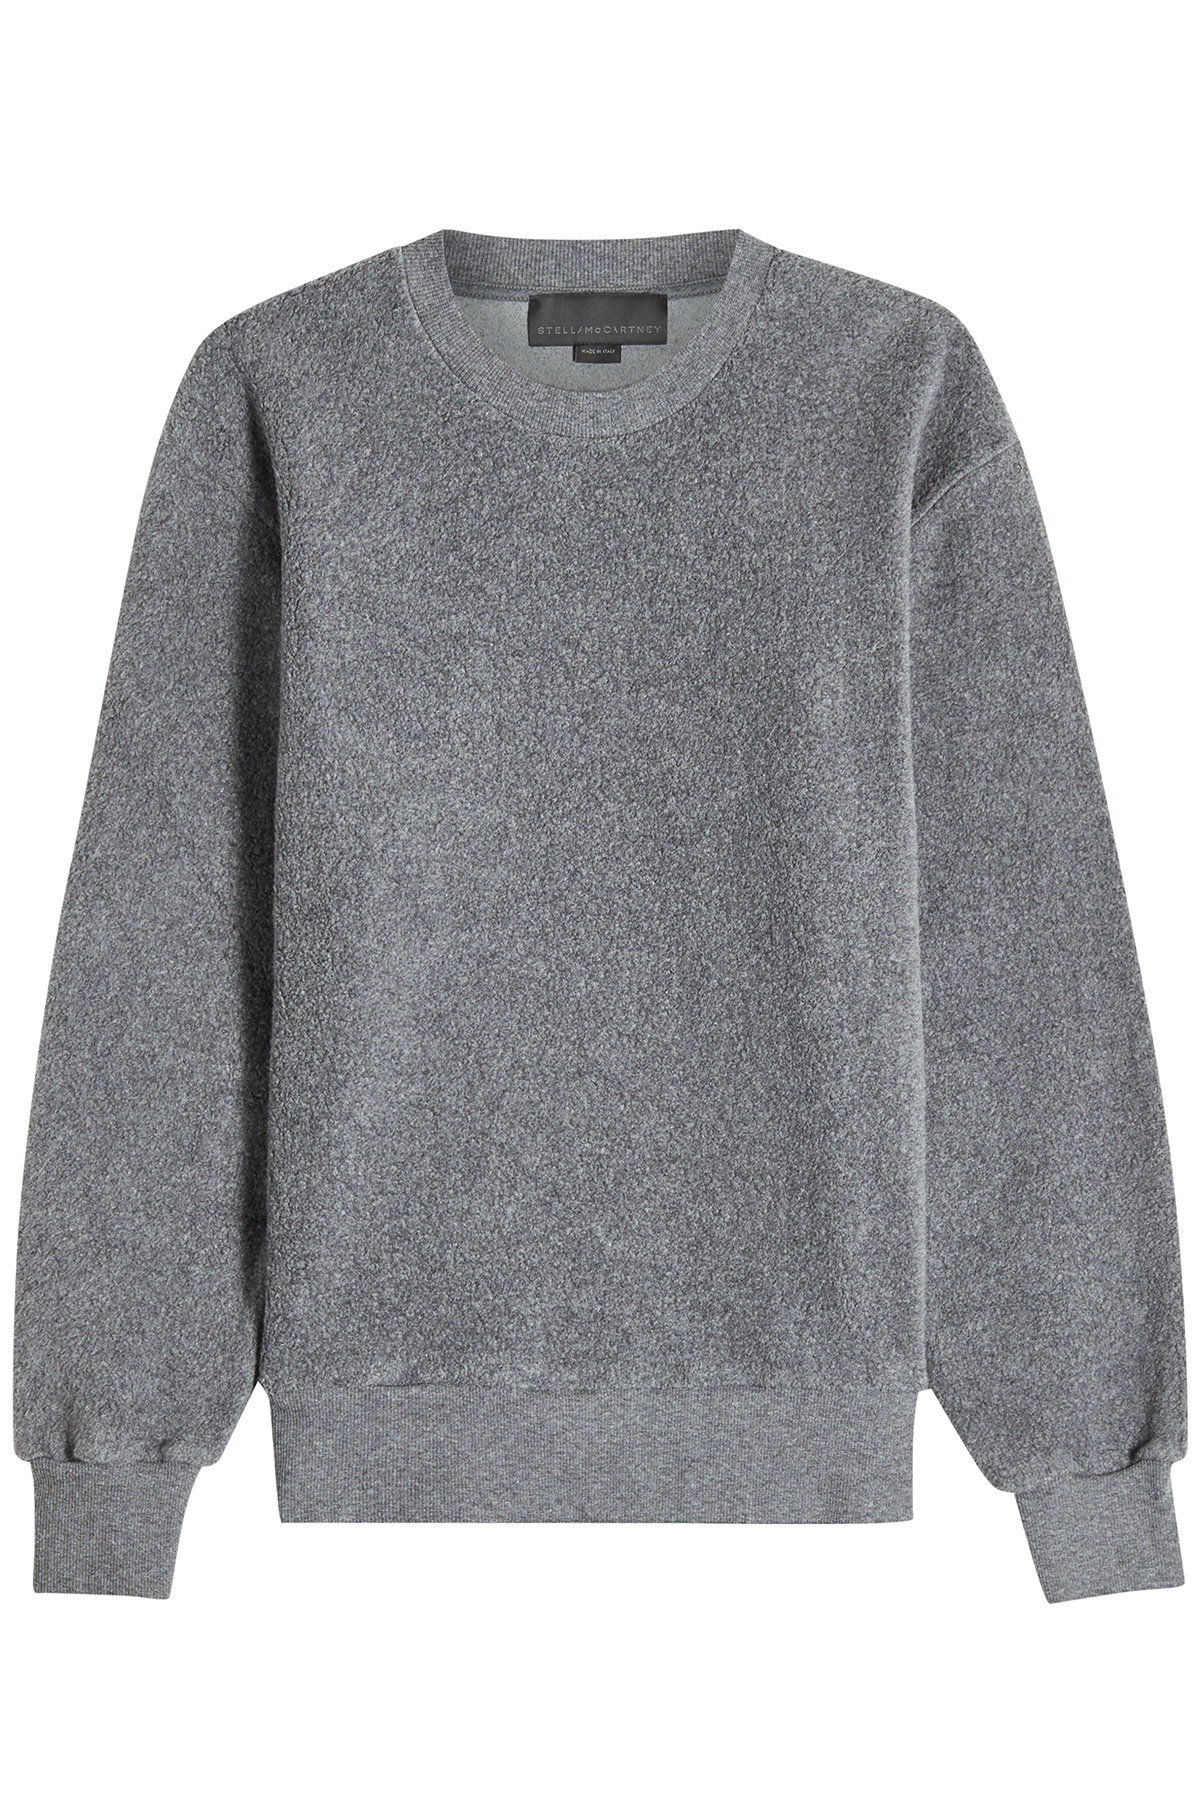 Ian Cotton Sweatshirt | STELLA MCCARTNEY